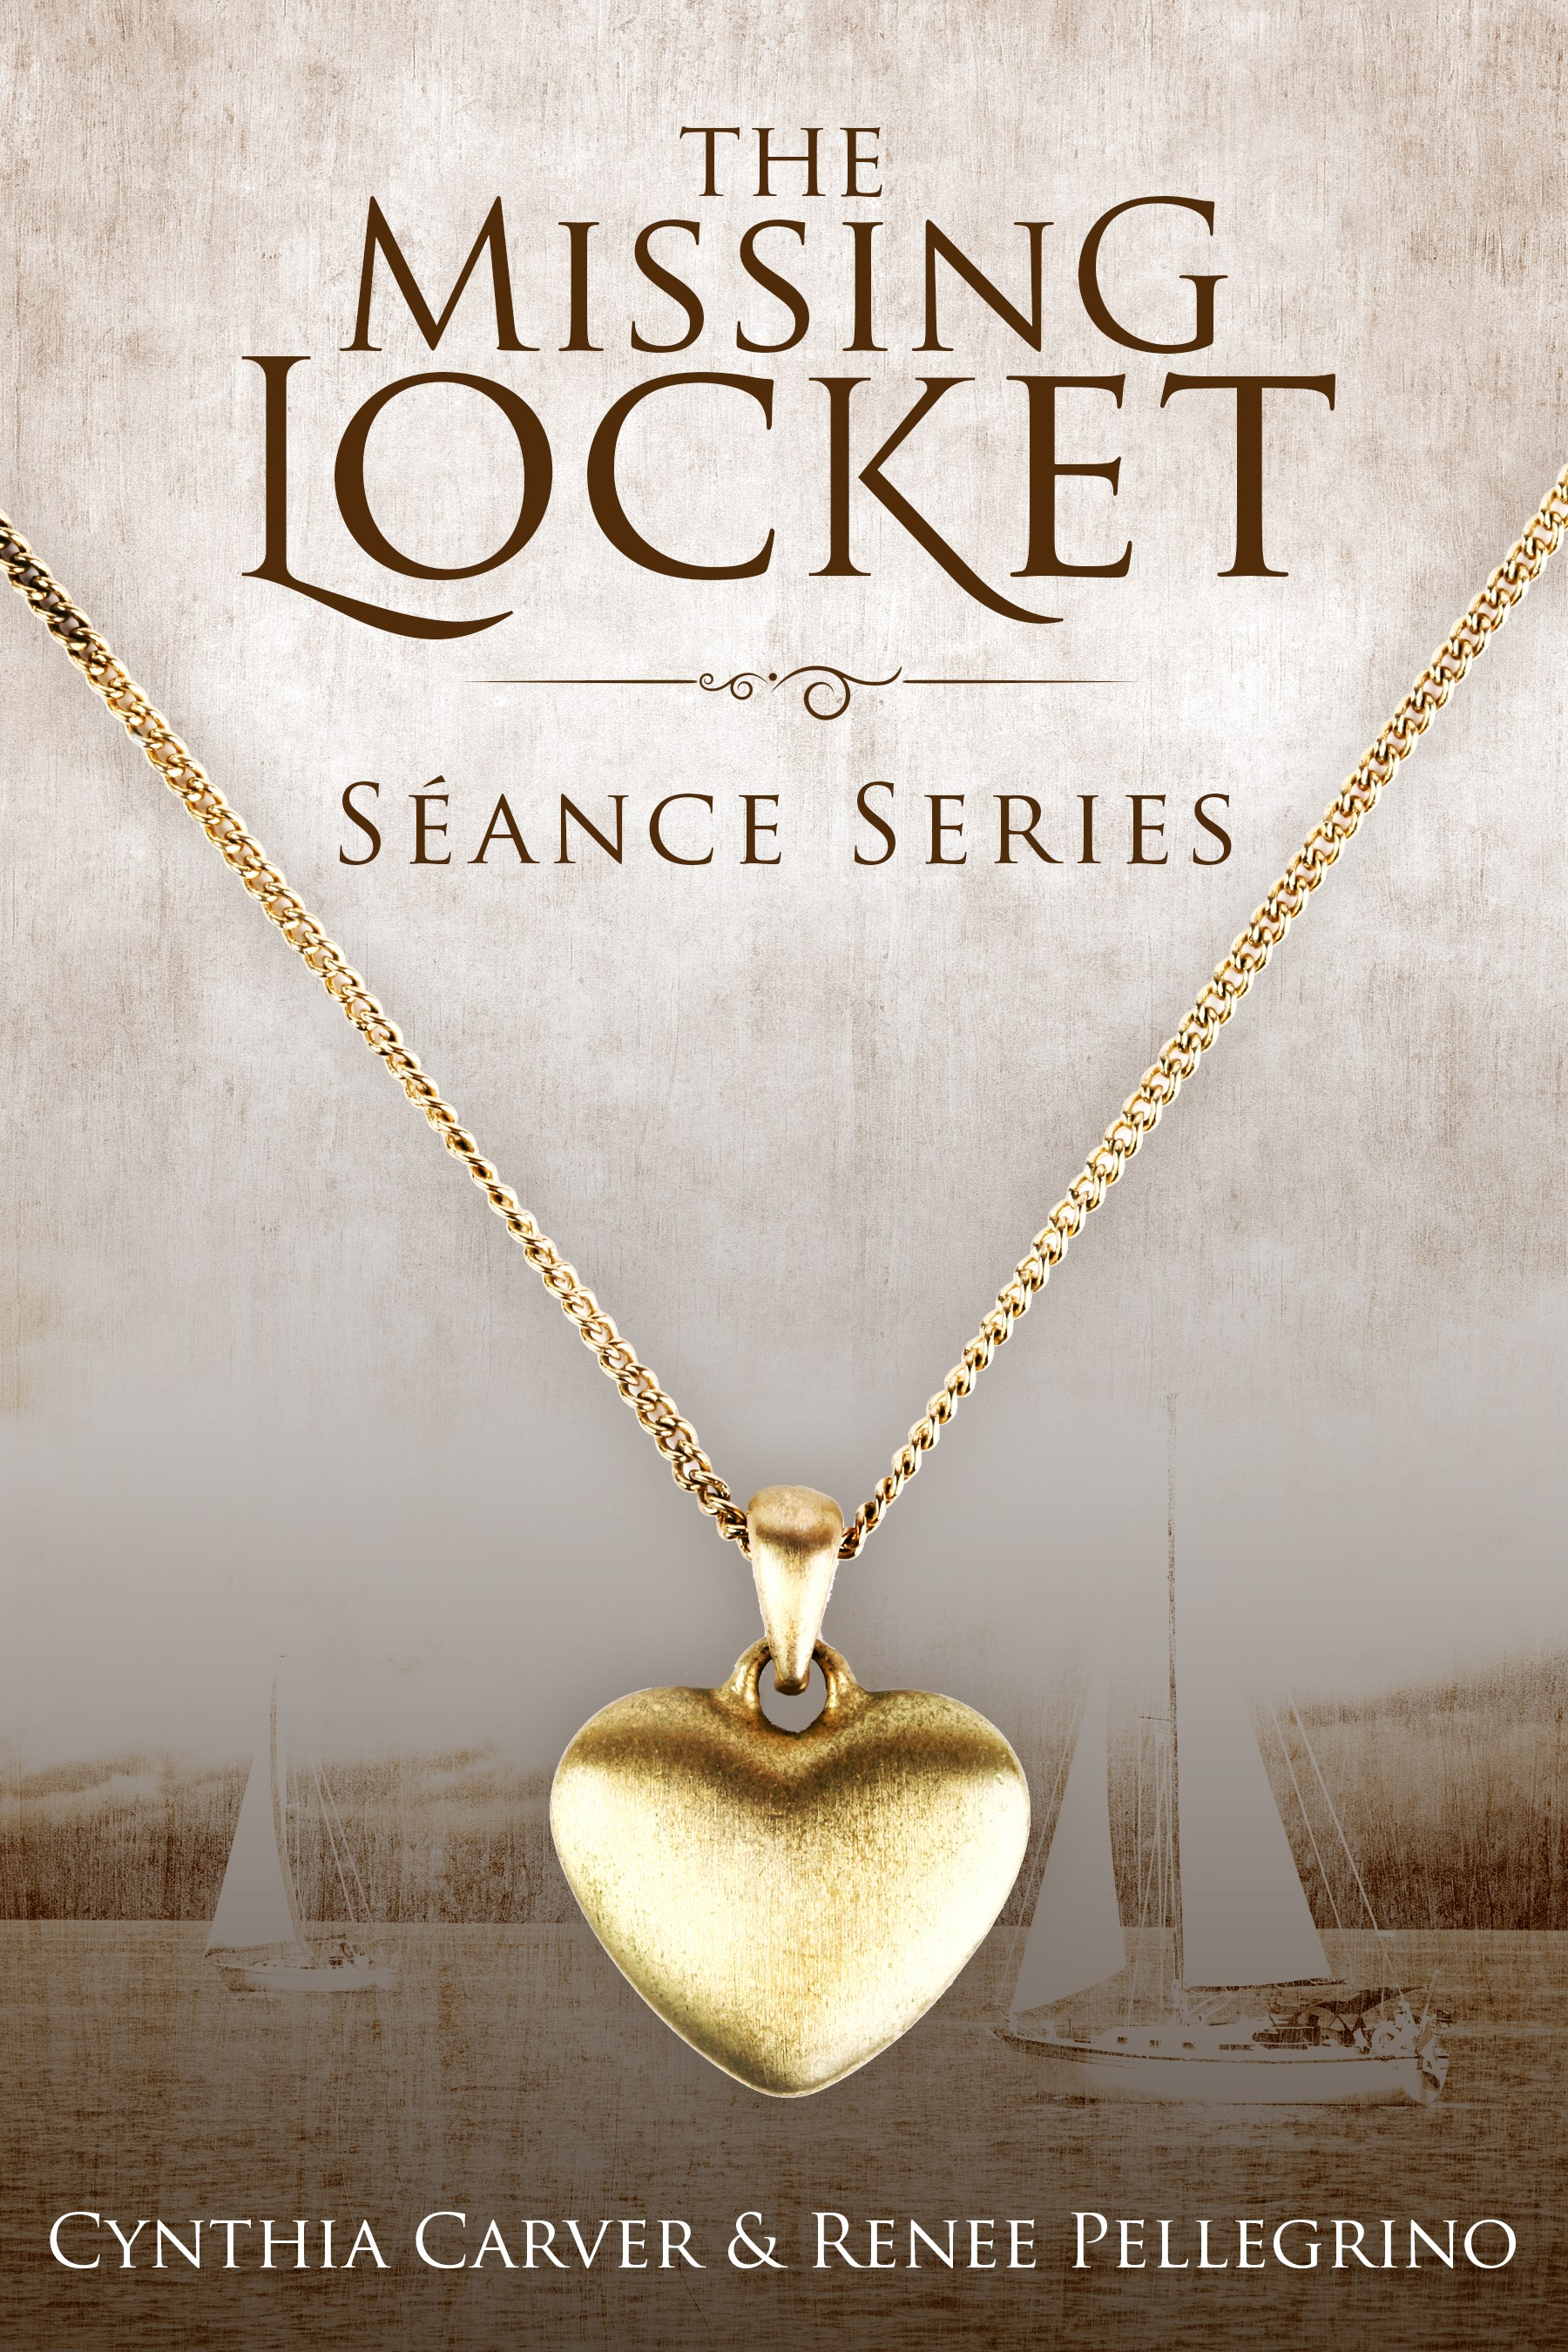 The Missing Locket, The Seance Series, Tracy Richards, Cynthia Carver, Renee Pellegrino